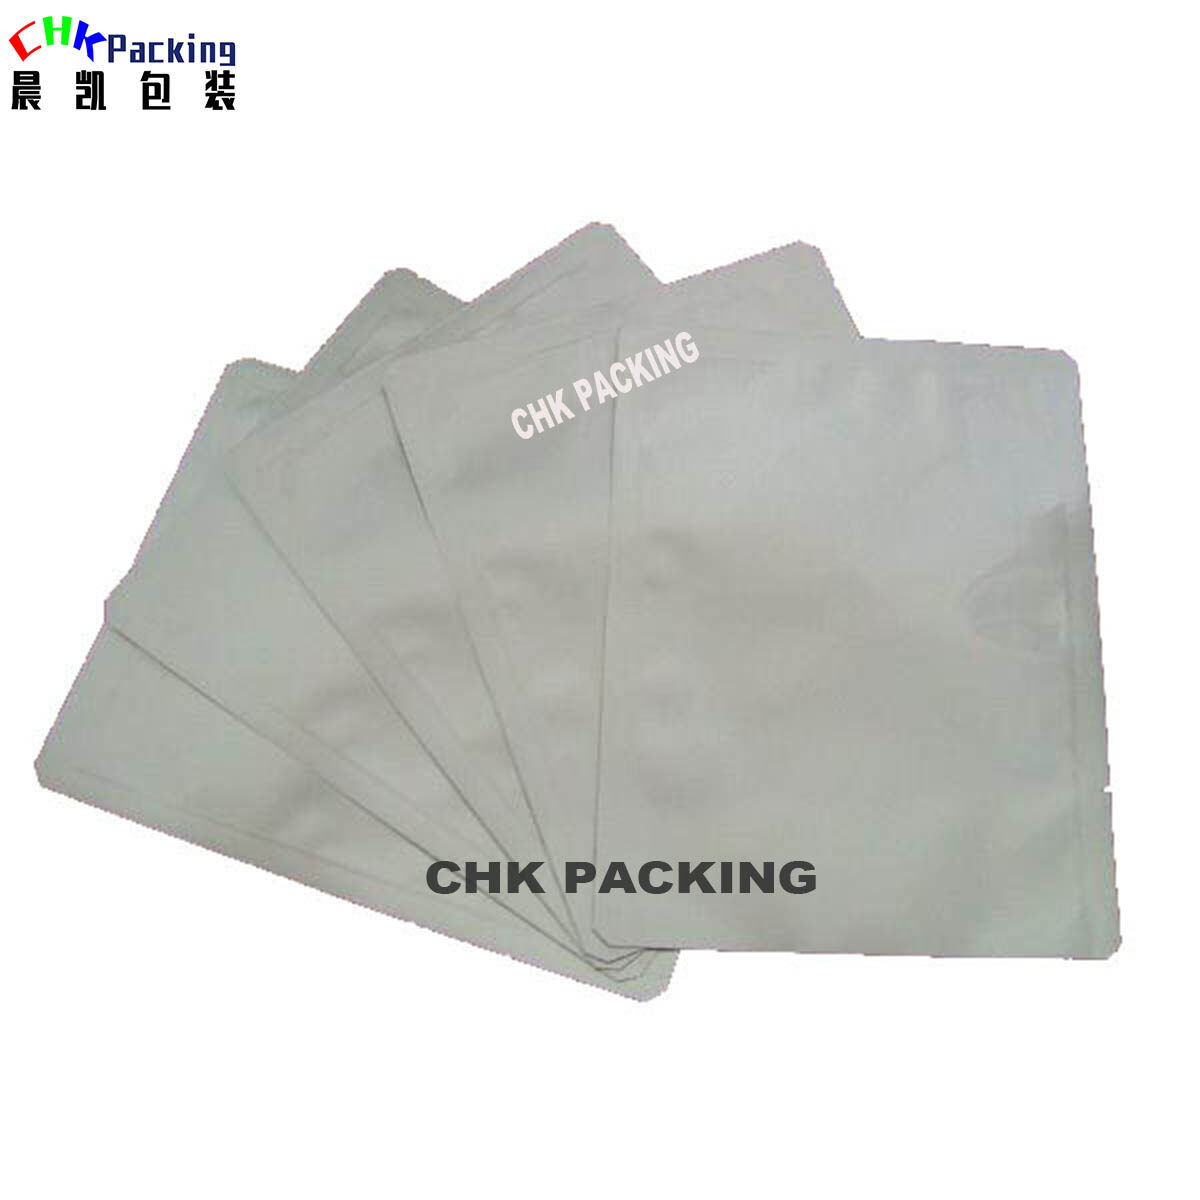 CHK Packing heat seal aluminium foil bag vacuum moisture barrier 3 side sealed food packaging bags